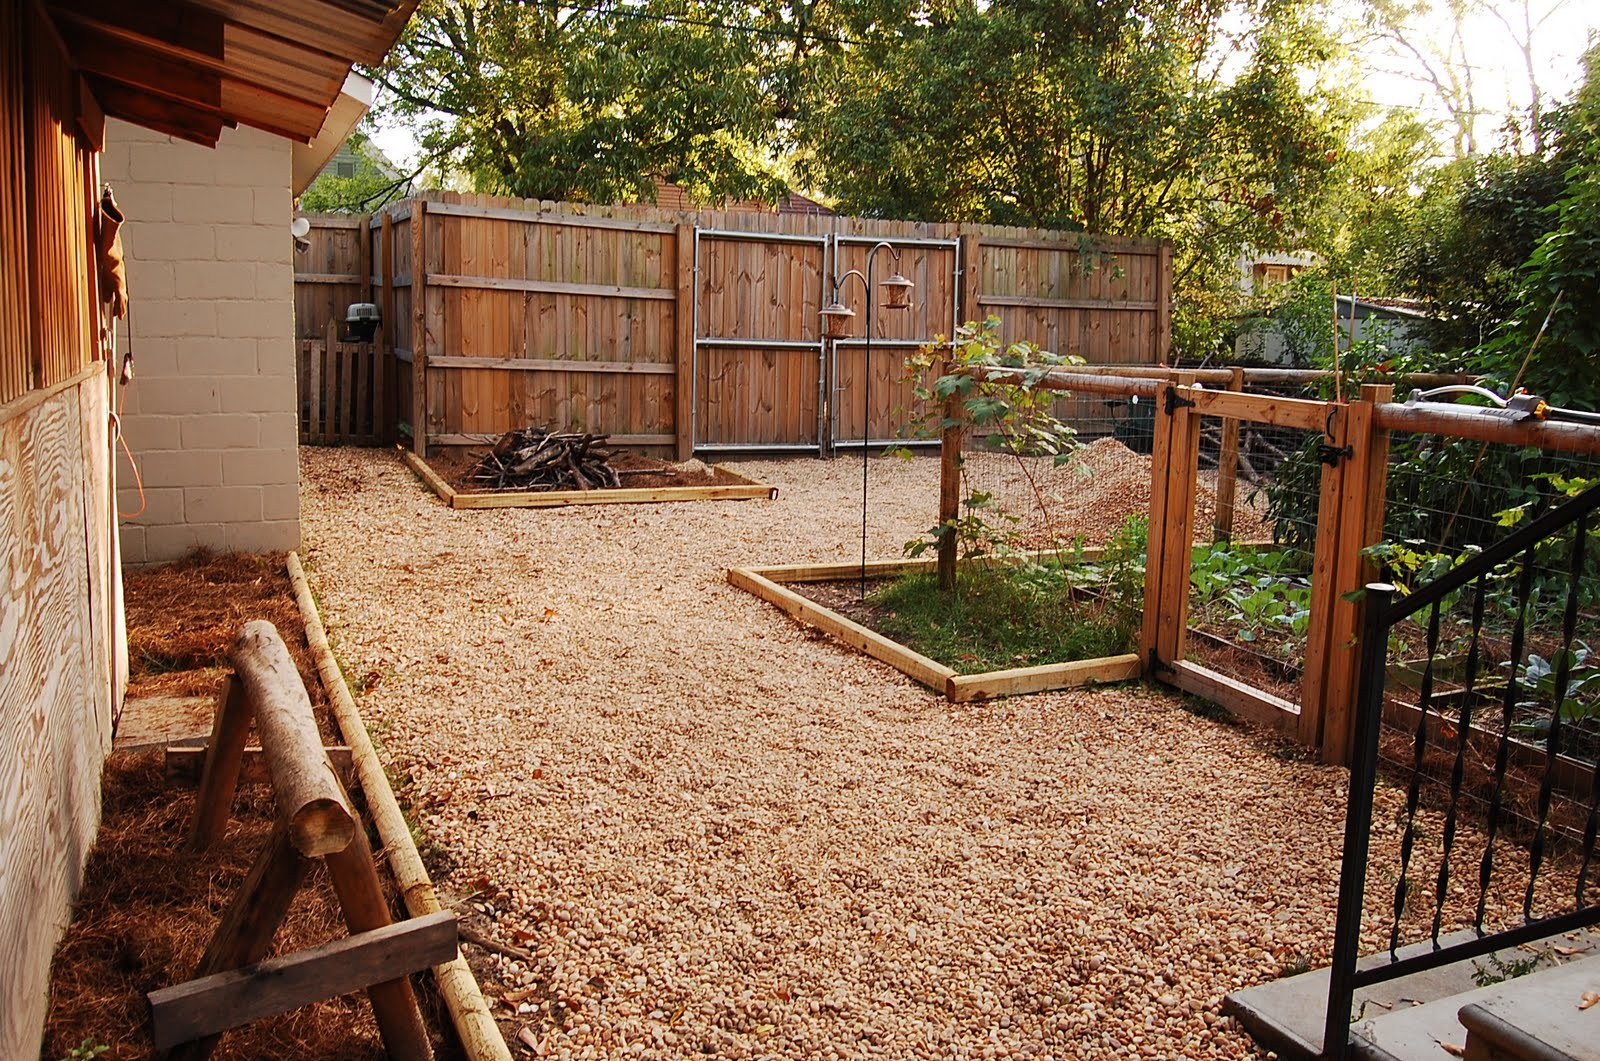 Urban self sufficientist backyard remodel on the cheap for Cheap back garden designs